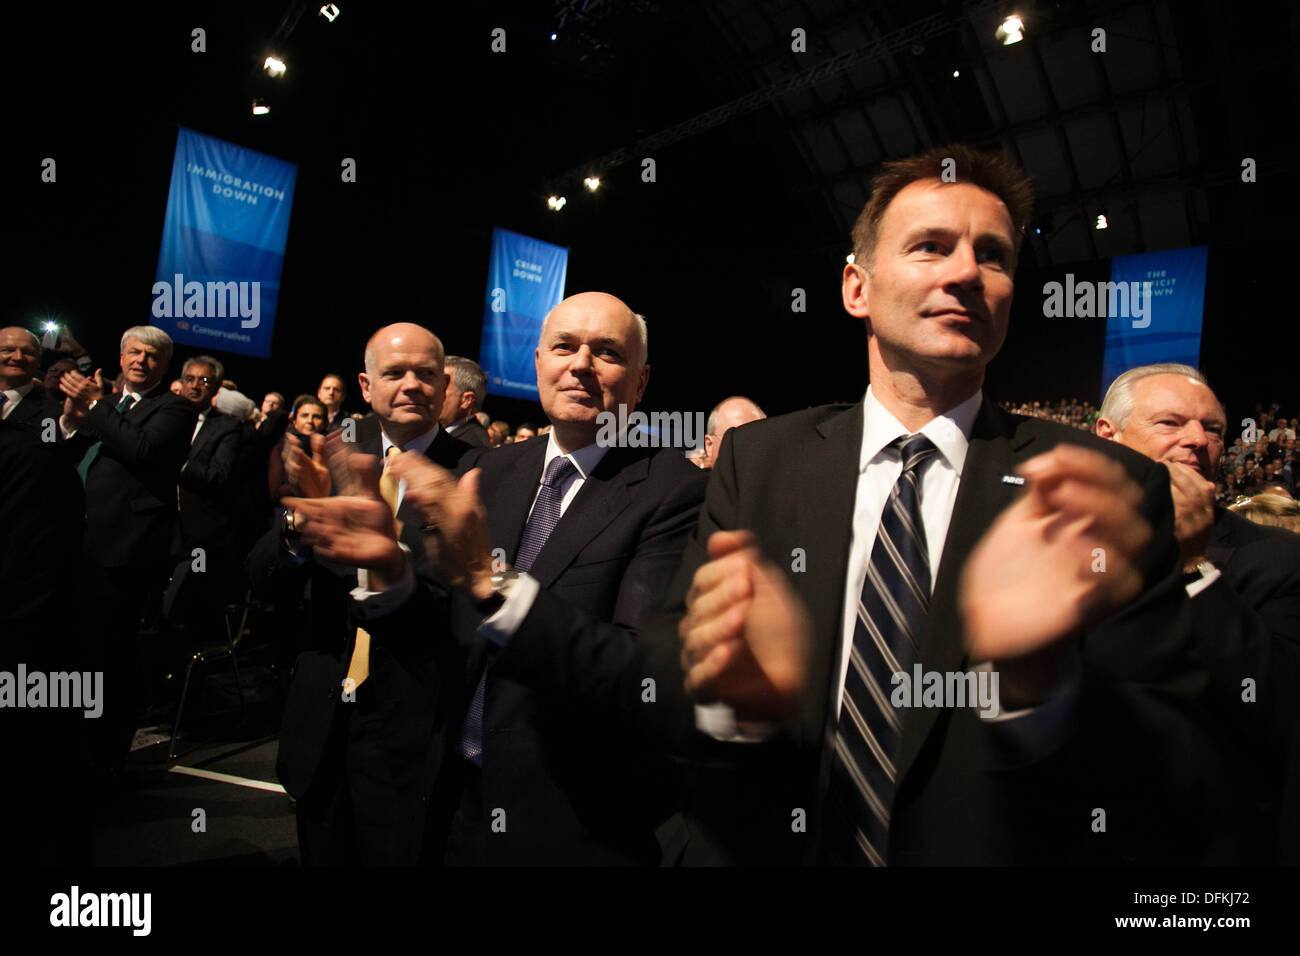 William Hague , Iain Duncan Smith and Jeremy Hunt watch David Cameron 's speech at Conservative Party Conference in Manchester - Stock Image